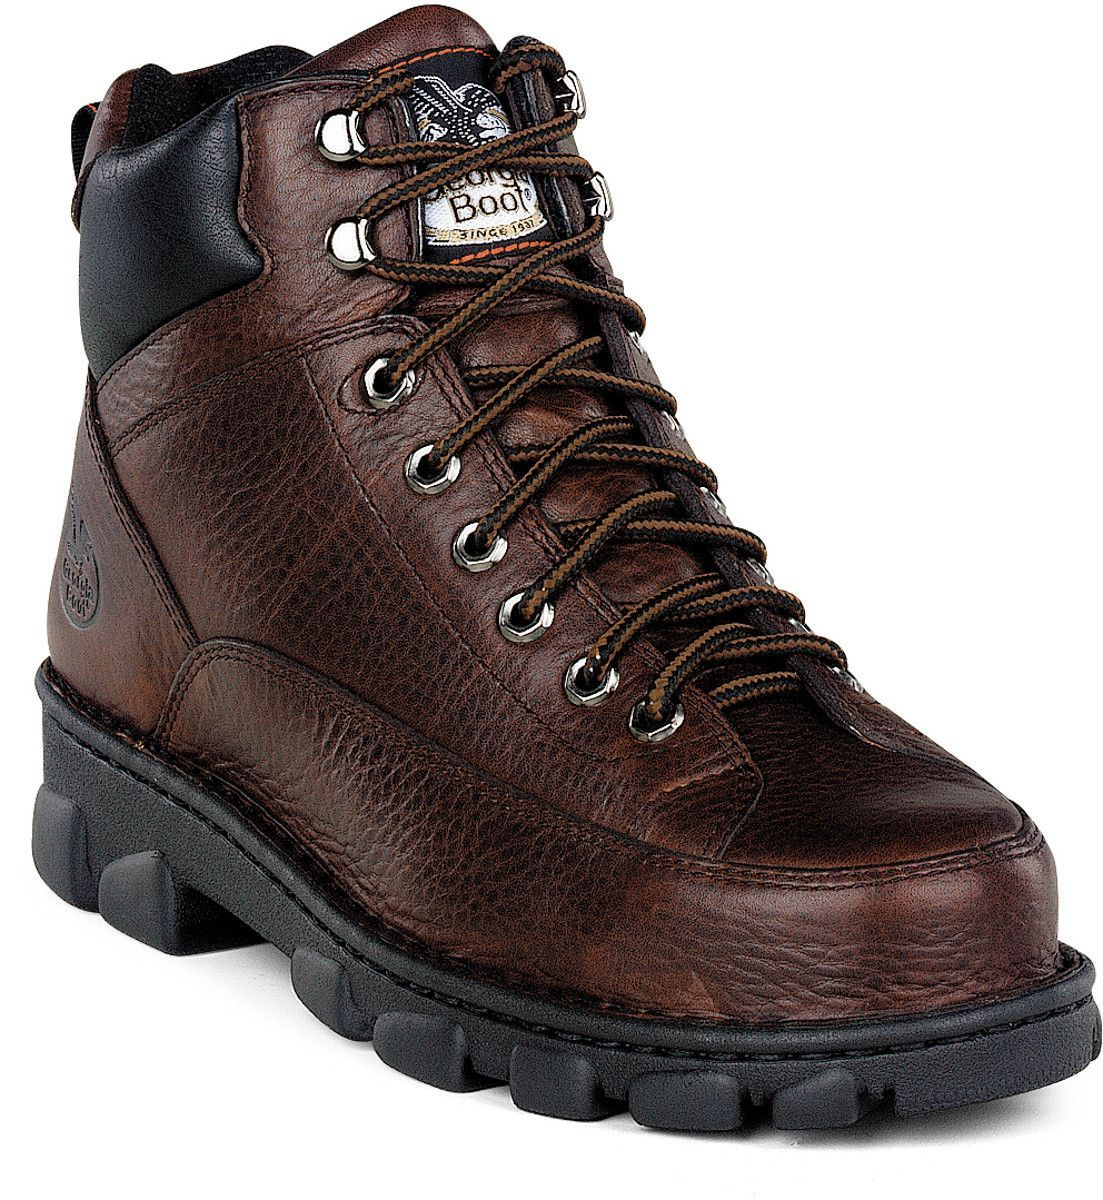 Georgia Eagle Light Mens Dark Brown Leather Wide Steel Toe Work Boots Steel Toe Work Boots Square Toe Boots Steel Shoes